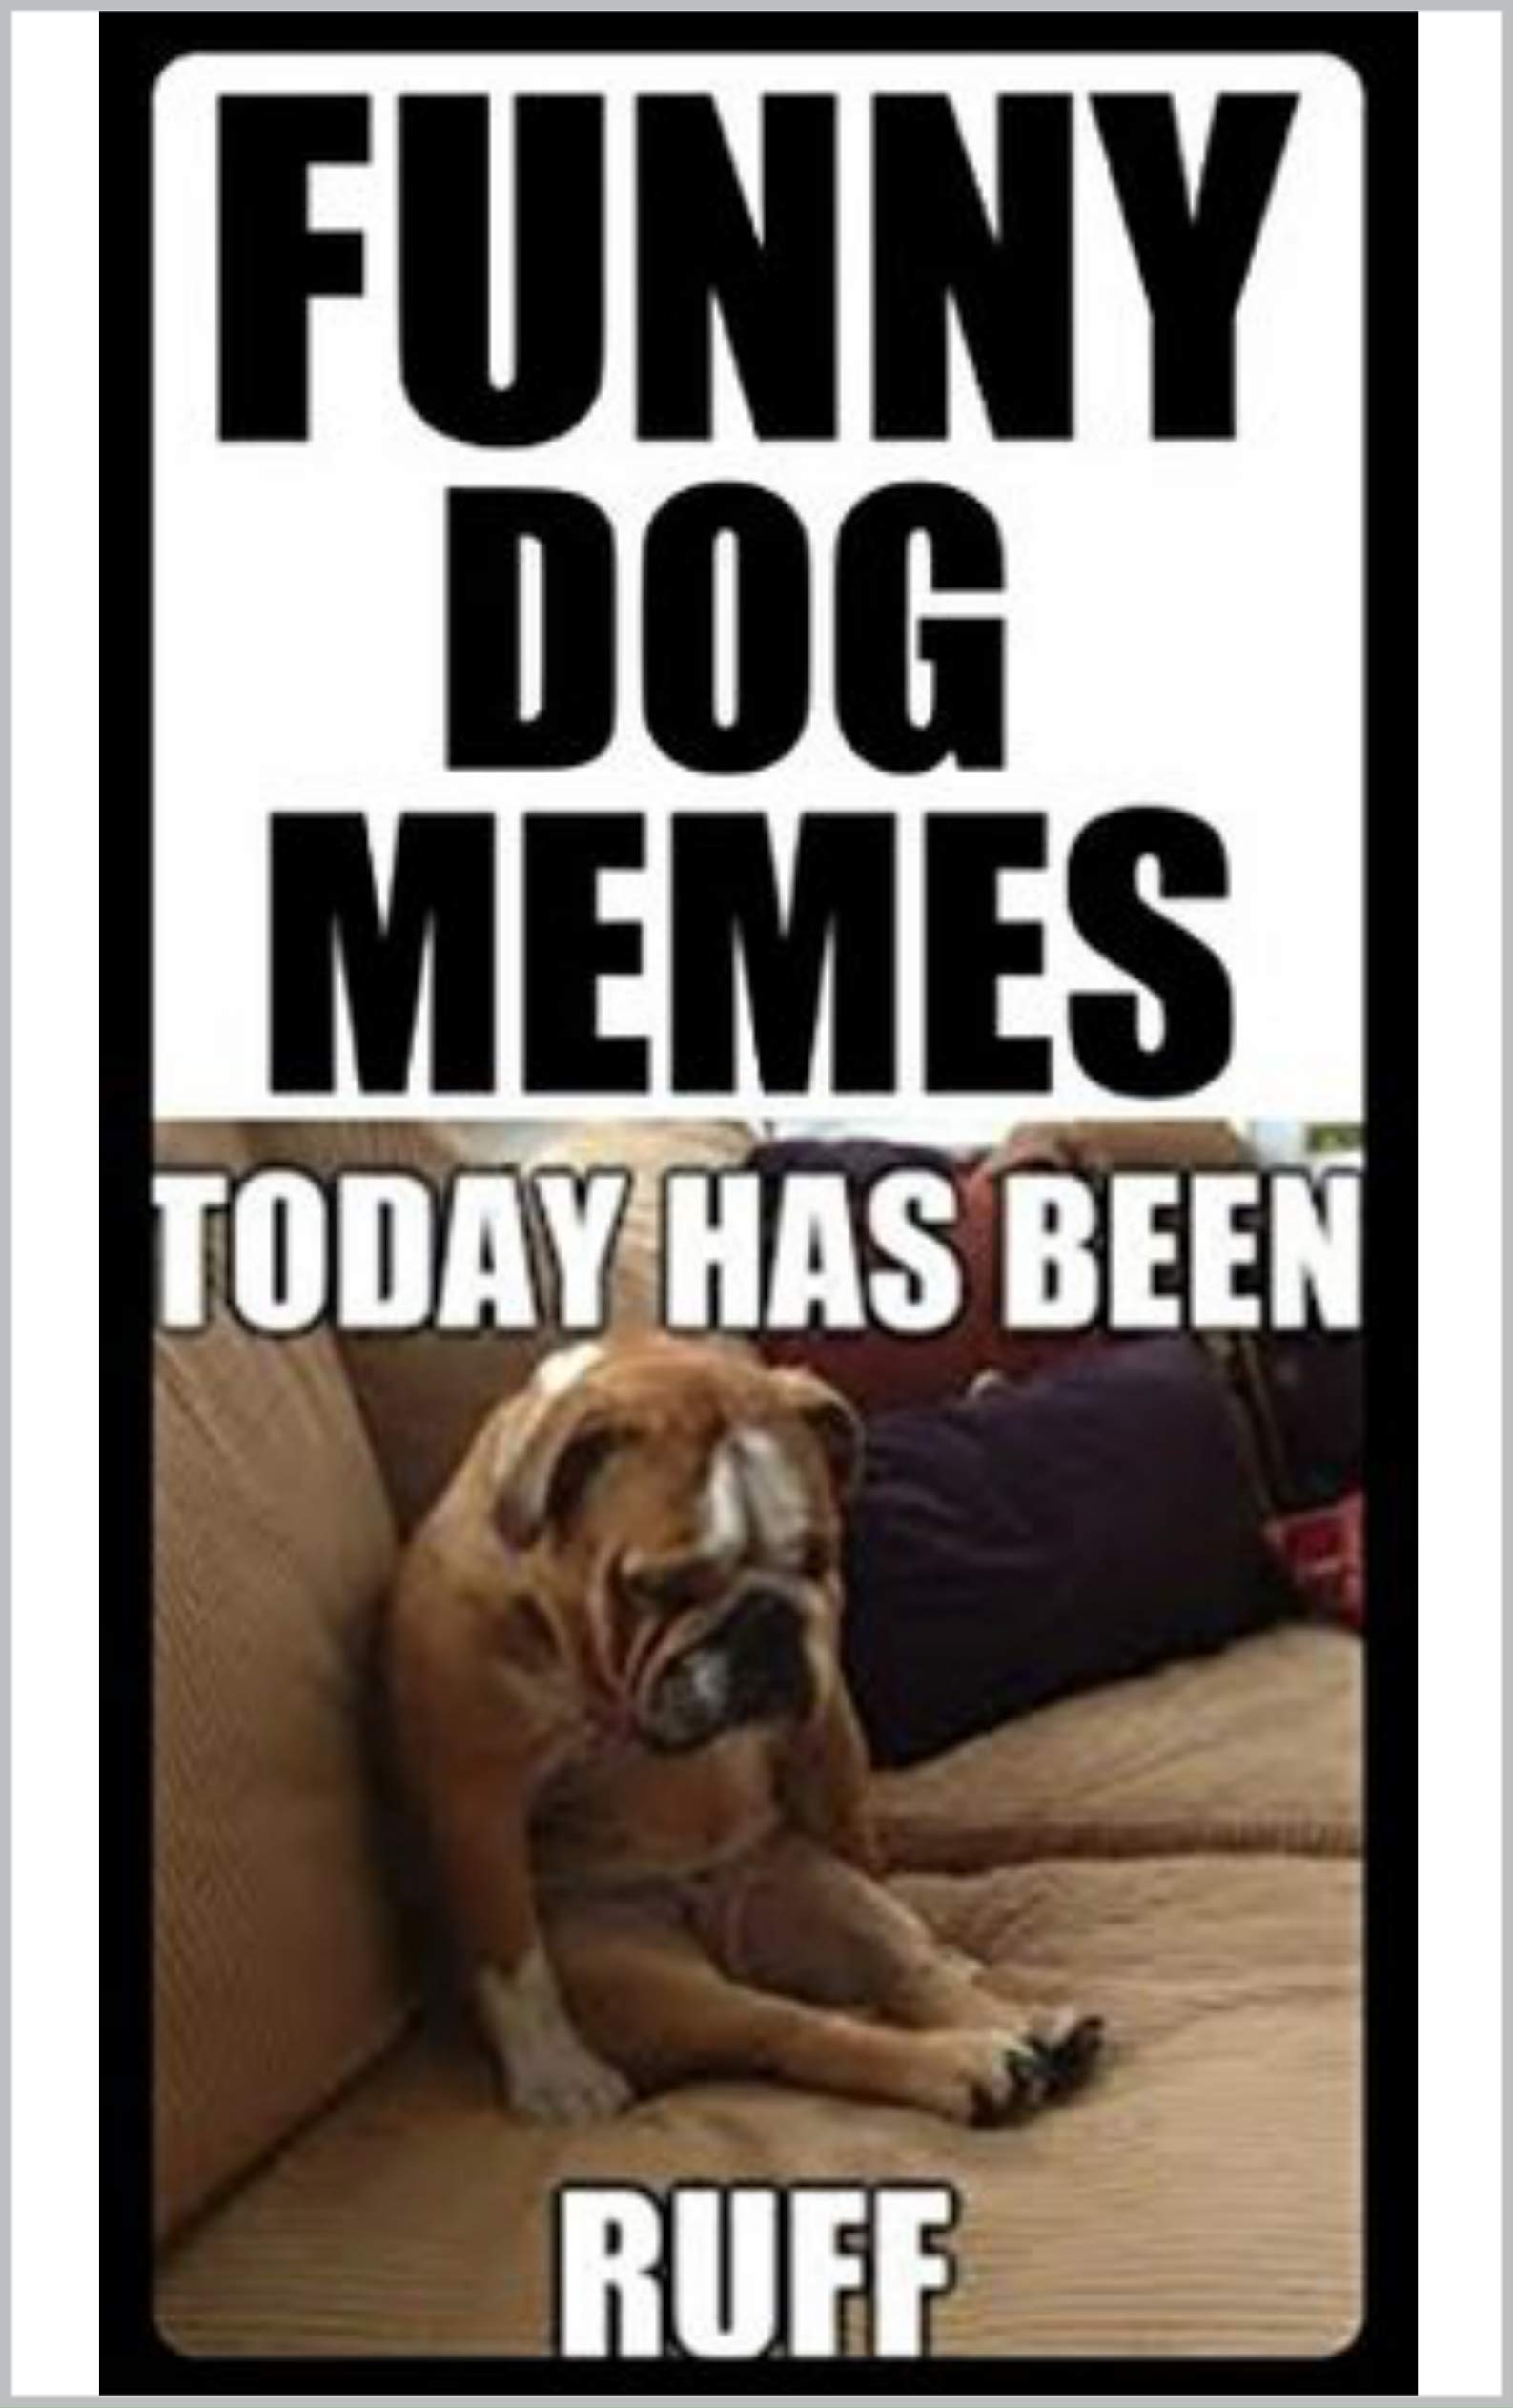 Memes: Funny Memes DOGGO SPECIAL Funny Dog Memes And Other Cool Memes For Epic Cool Kids And Dudes